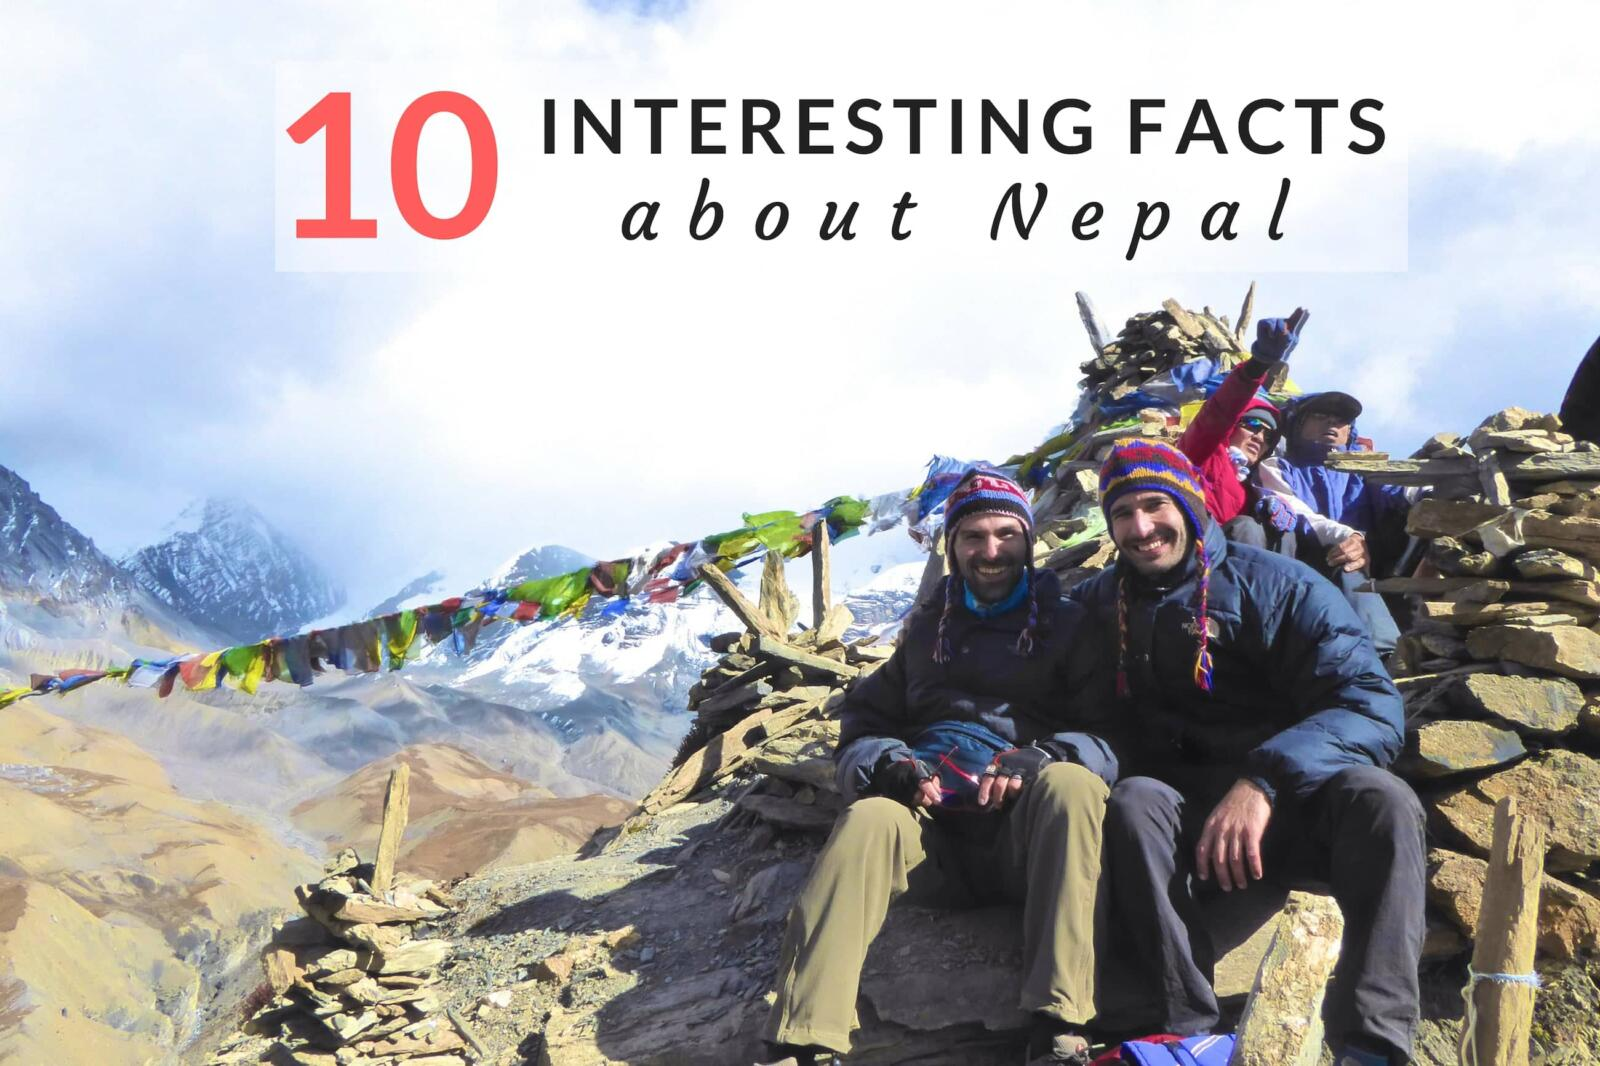 10 interesting facts about Nepal